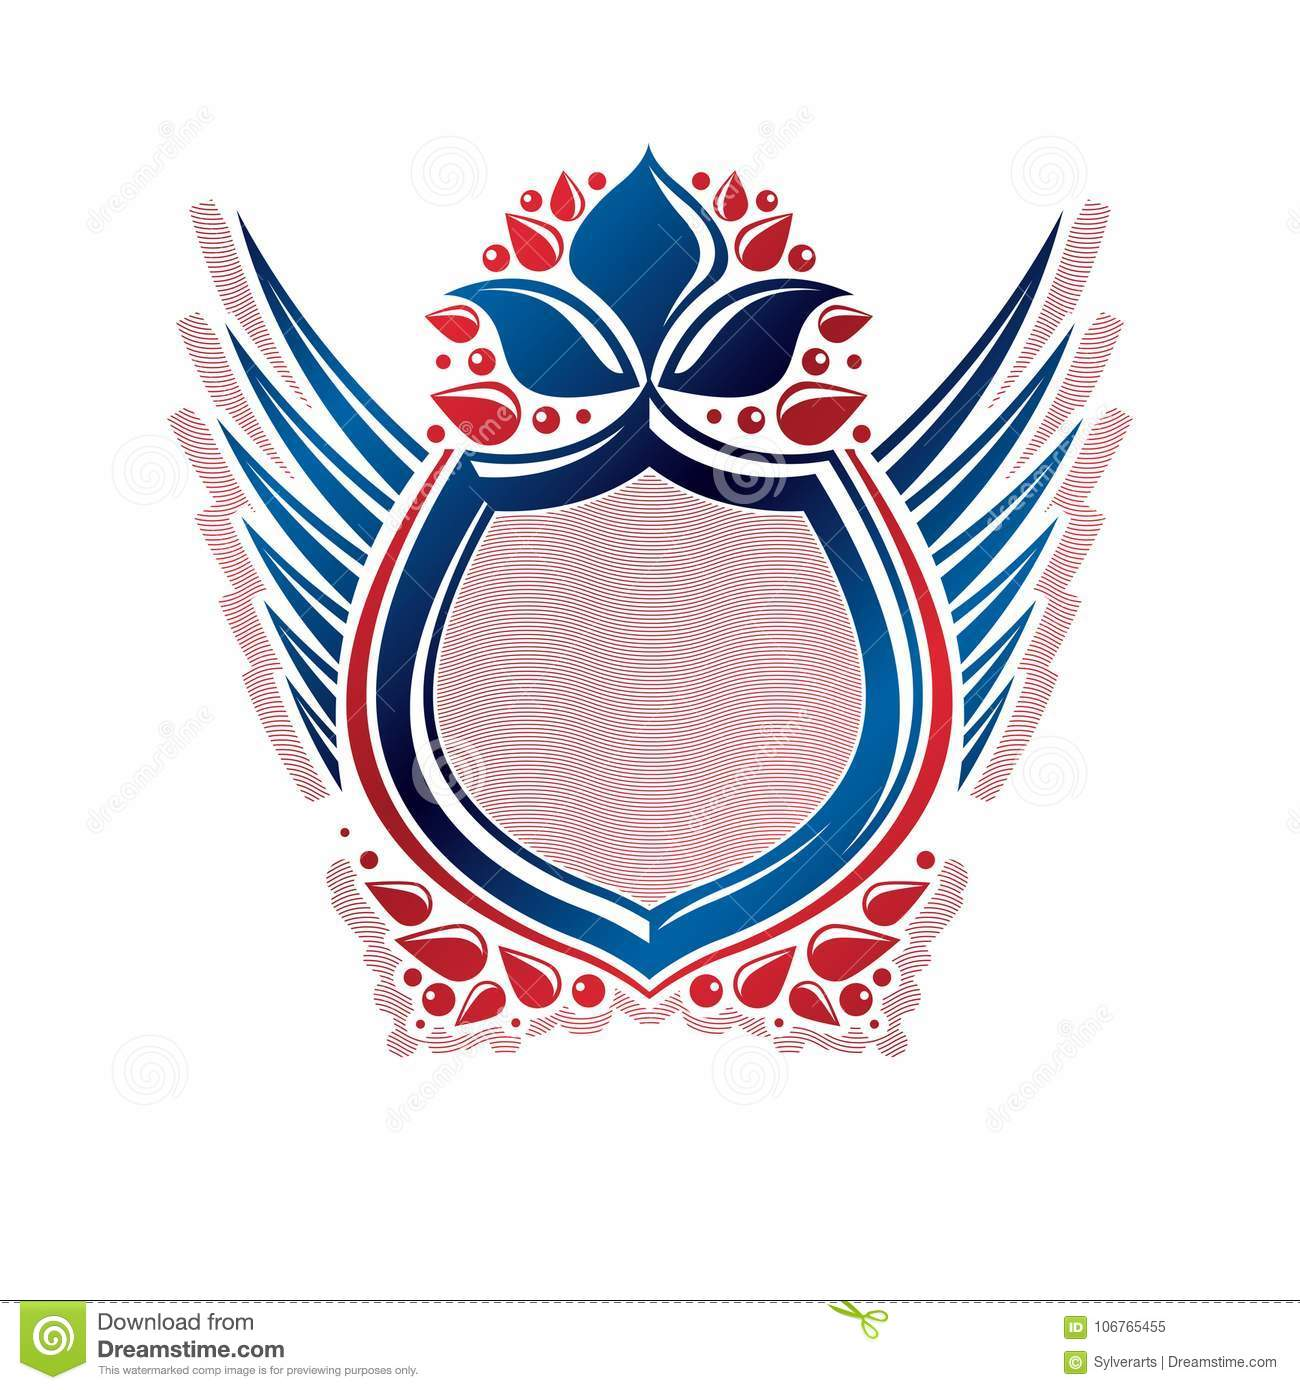 Blank Heraldic Coat Of Arms Decorative Emblem With Copy